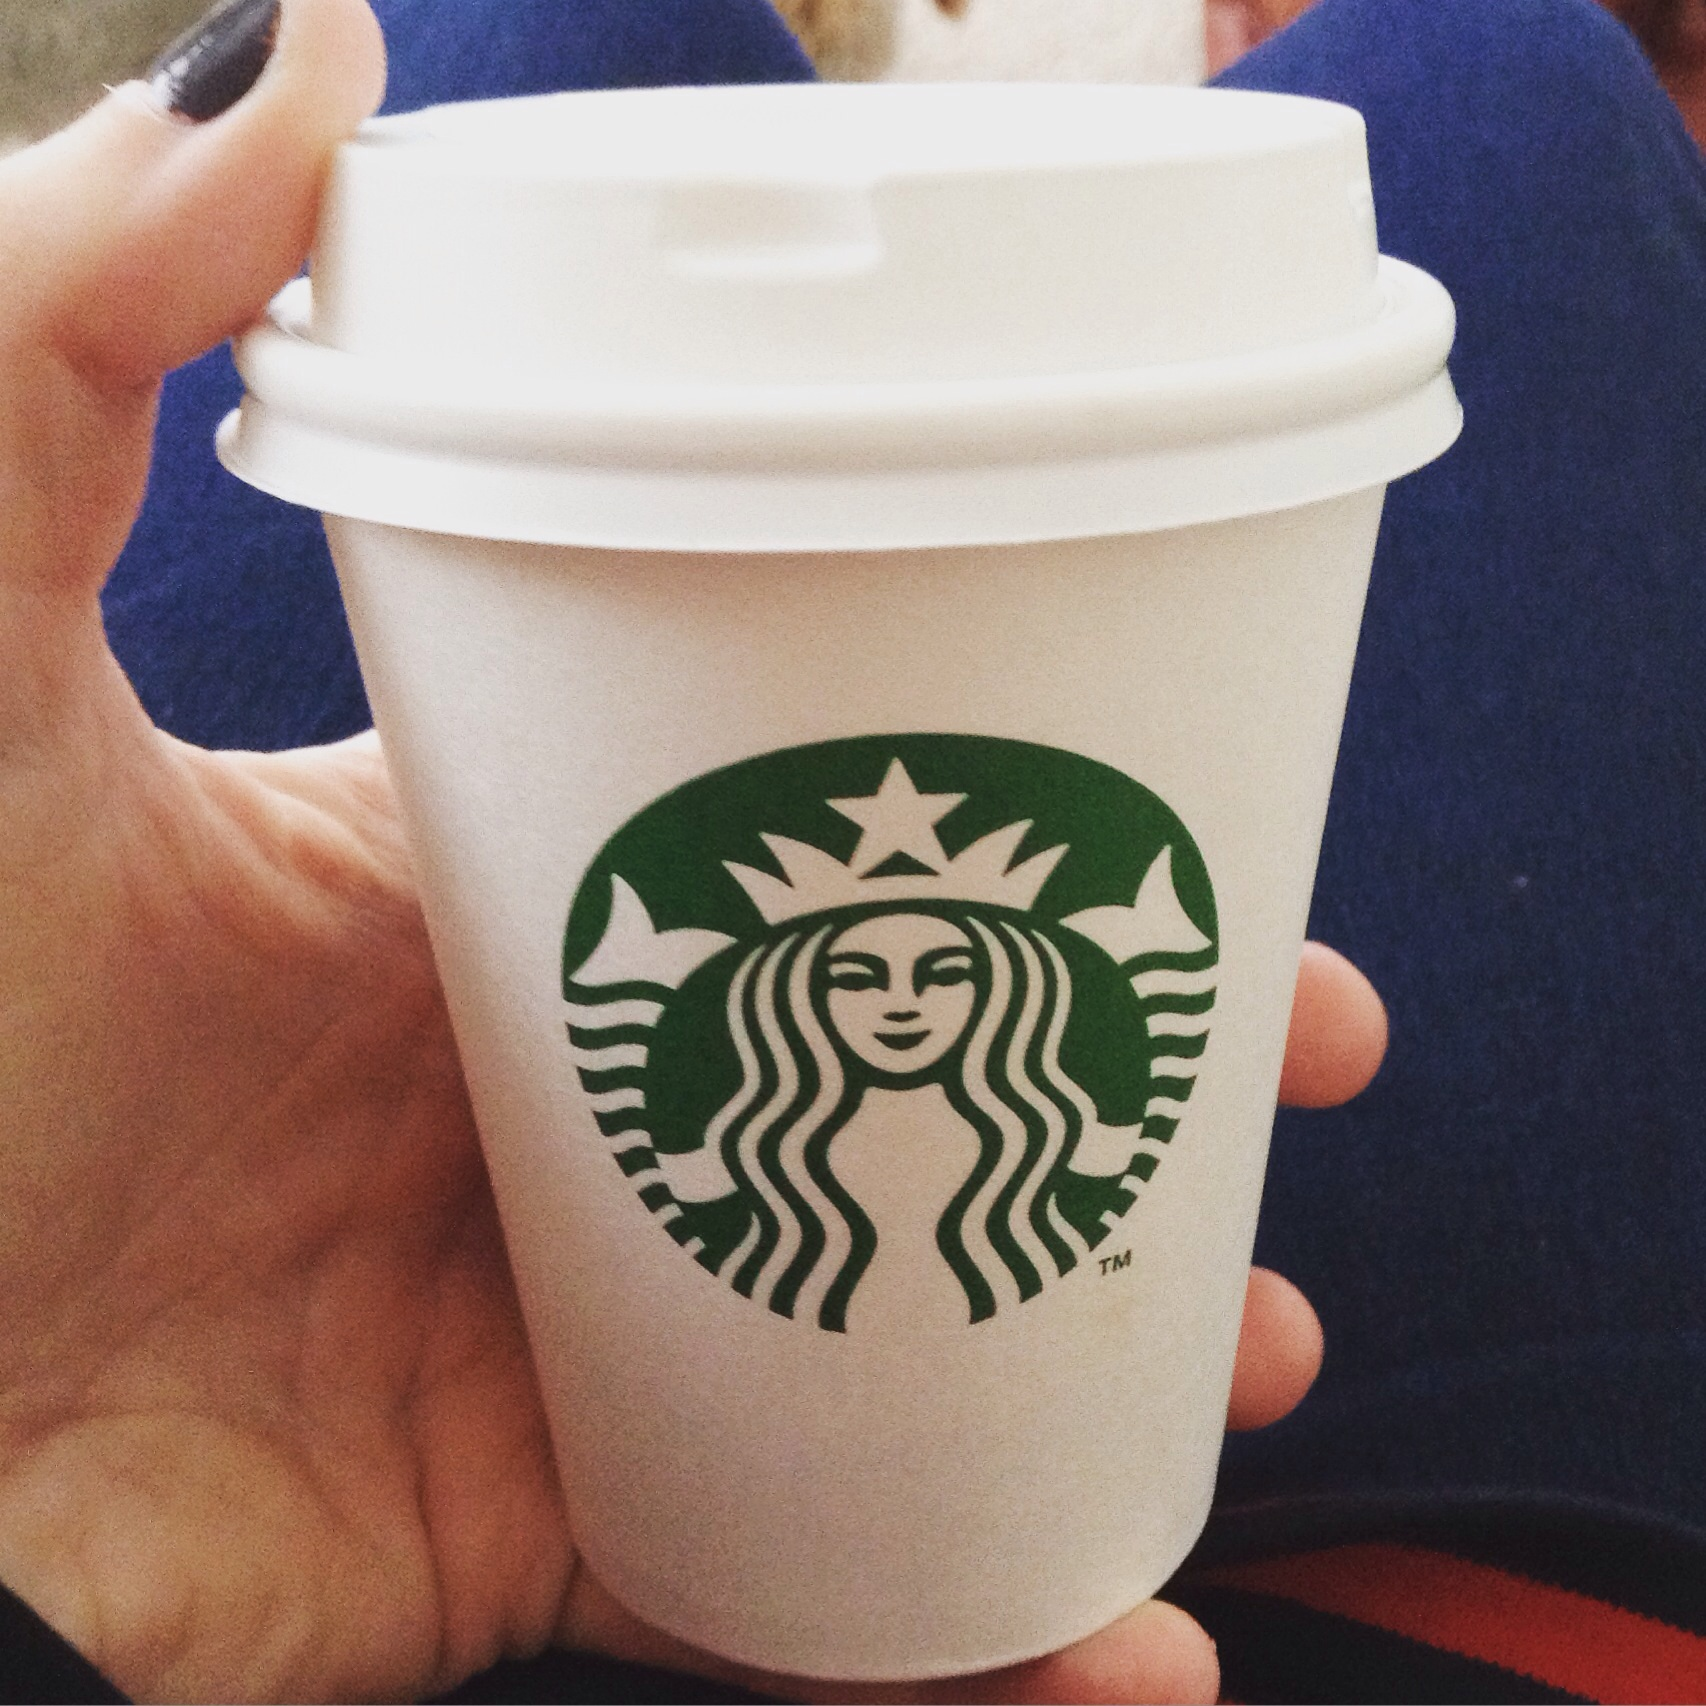 Tiny little takeaway cup